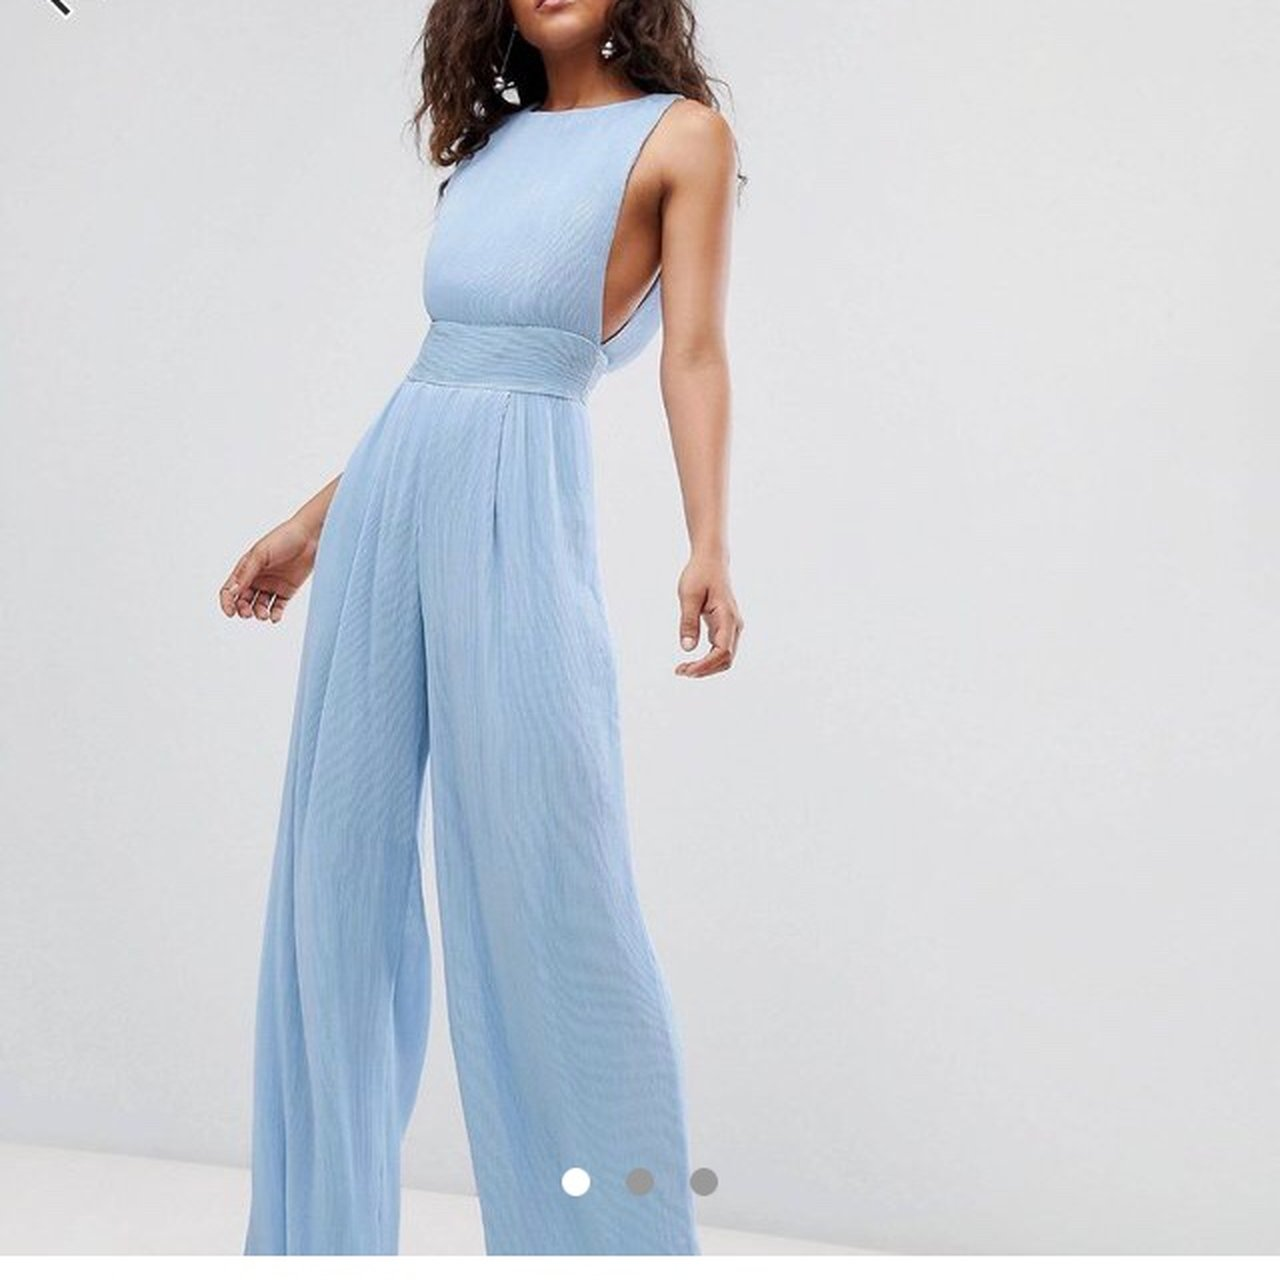 65c0d98ae05 Pale blue Missguided Jumpsuit Wide leg Plunge at sides   - Depop